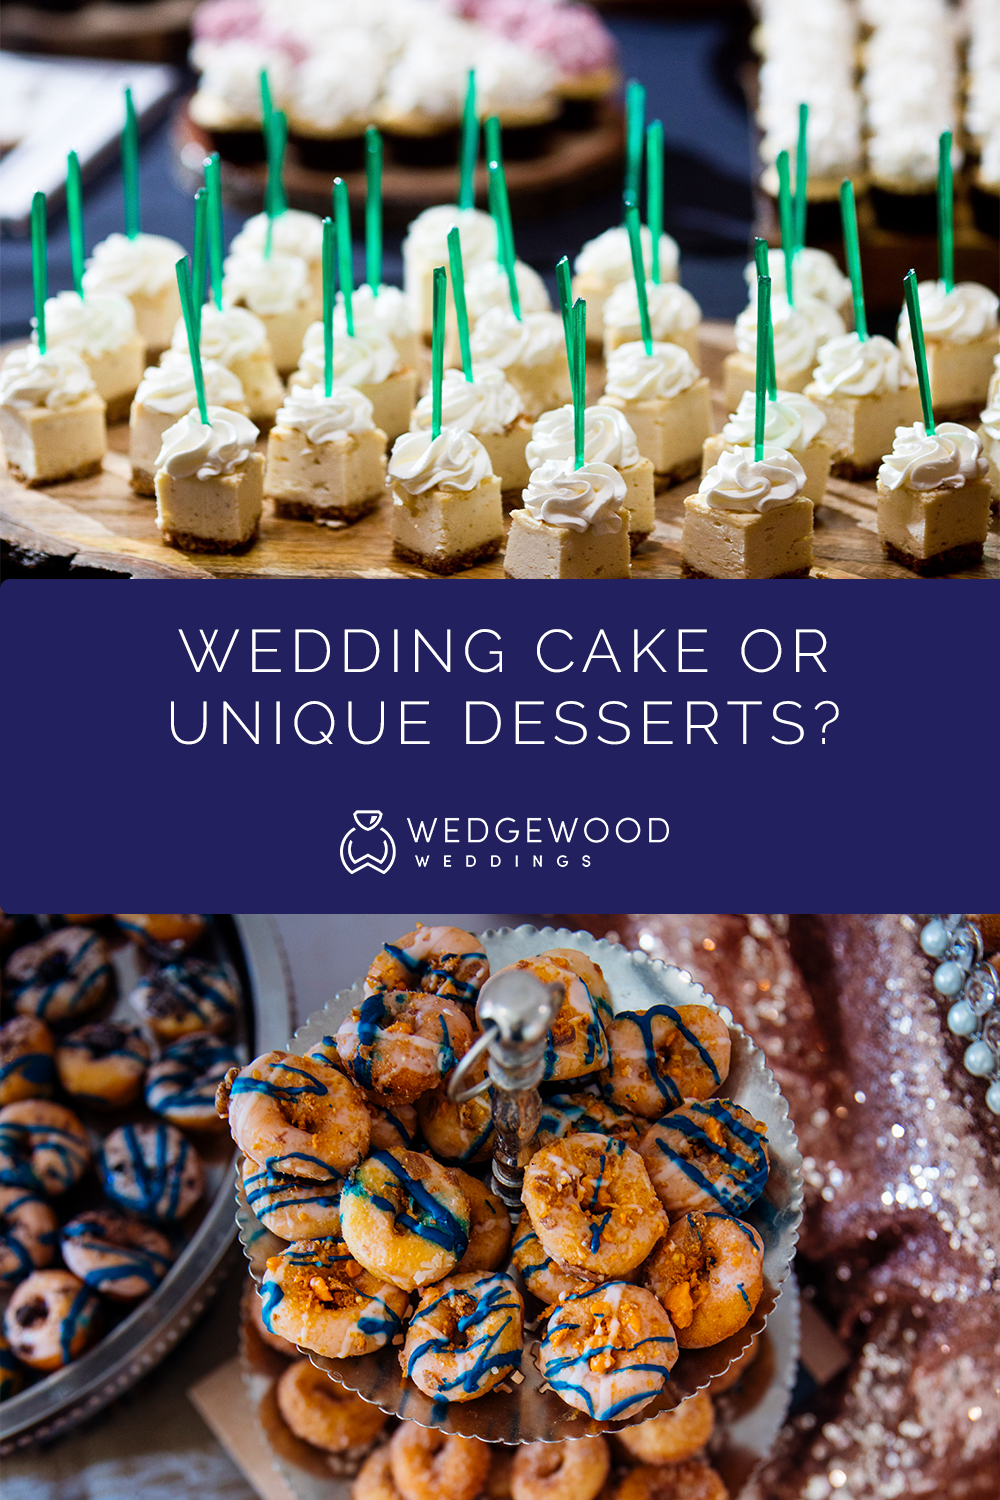 There are so many equally delicious alternatives to the typical wedding cake. Check out some of our suggestions here! Newlyweds often offer wedding cake alternatives at their reception. 69% of couples serve cake—but 53% also serve an alternative wedding dessert